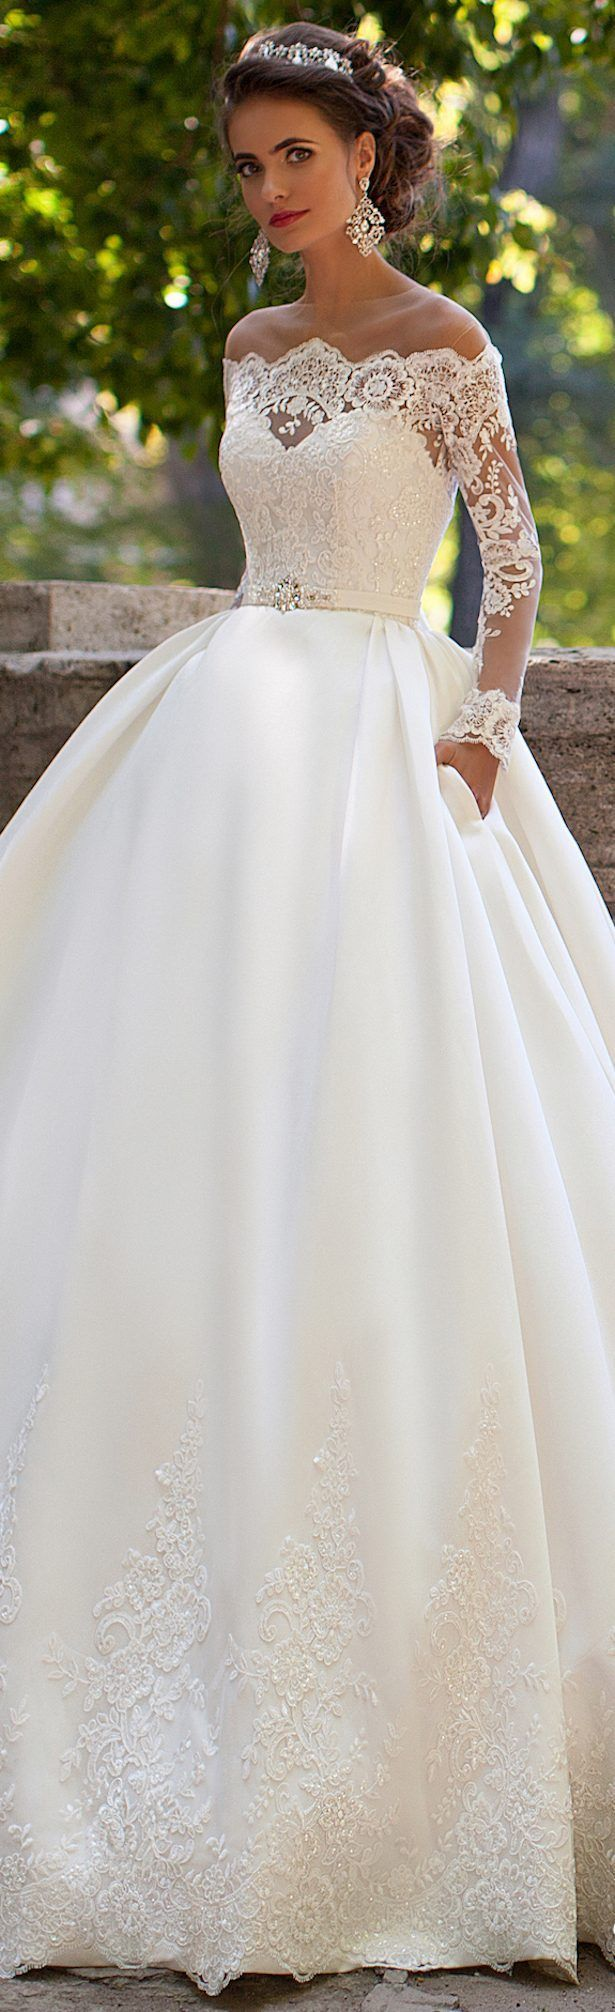 Photo of 20 ball gown wedding dresses that leave you speechless